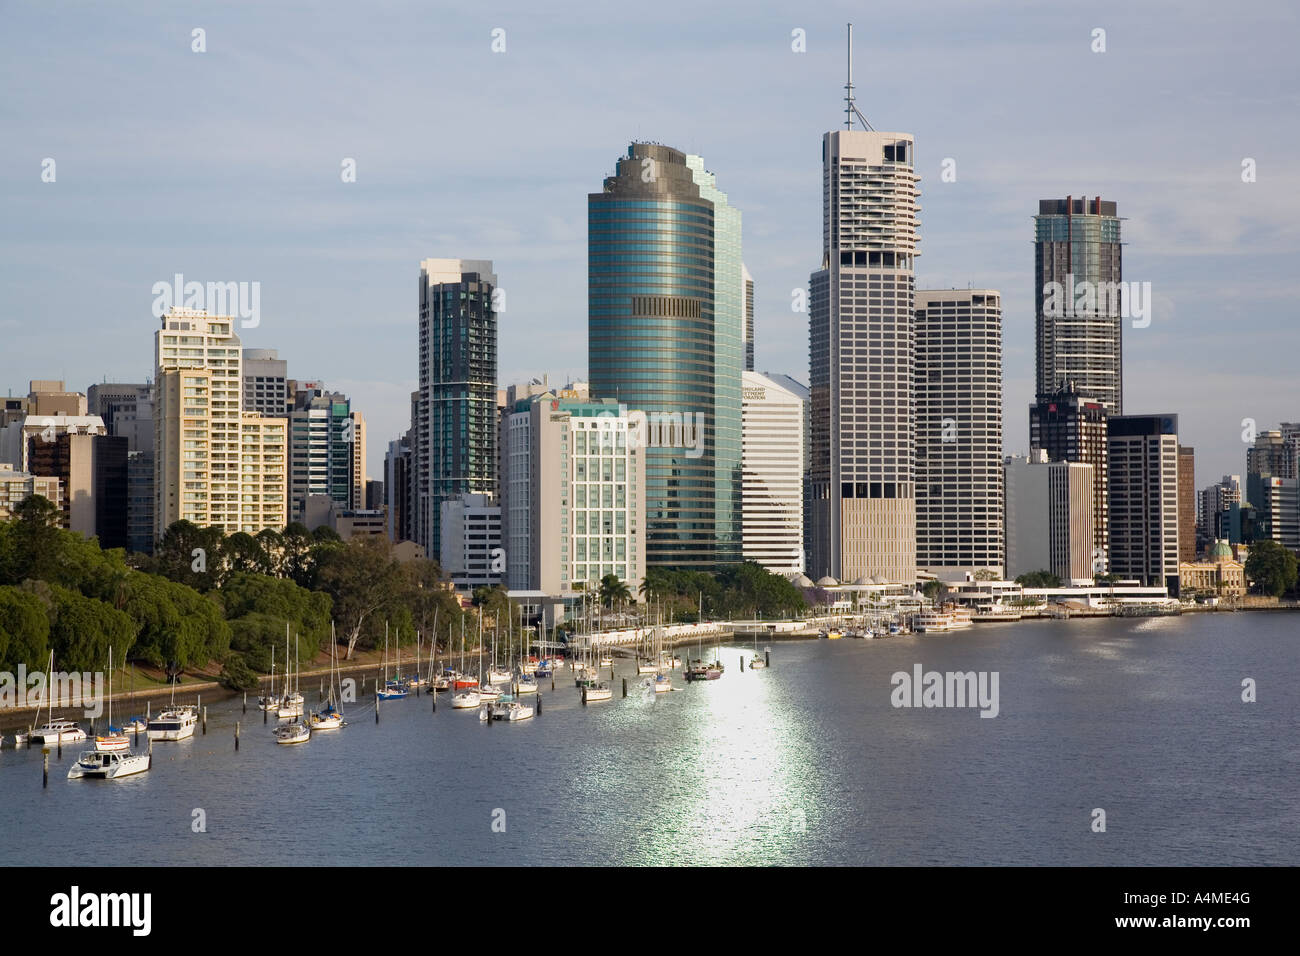 where is brisbane queensland australia